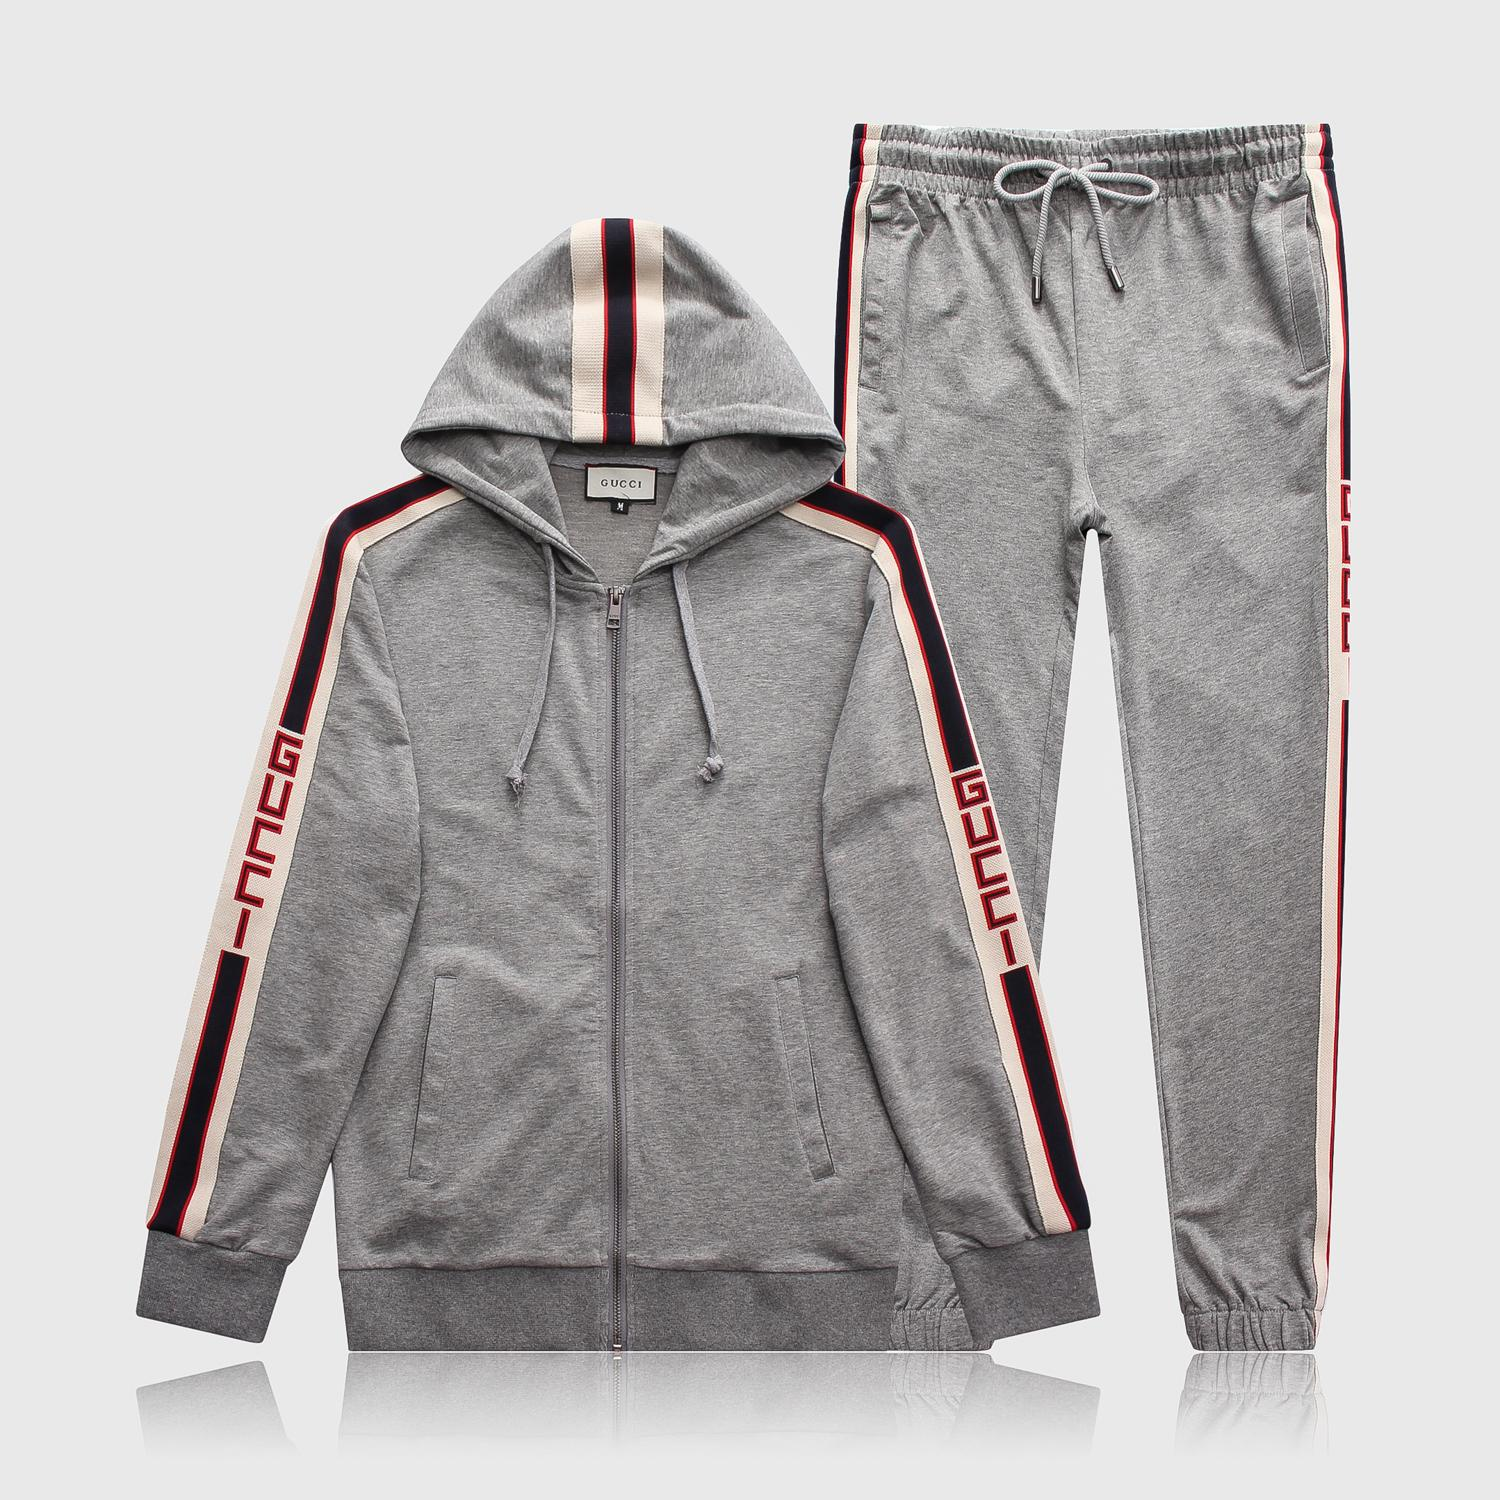 b9c1f387f65 Designer mens tracksuit letter luxury casual suits hoodies jpg 1500x1500 Gucci  tracksuit